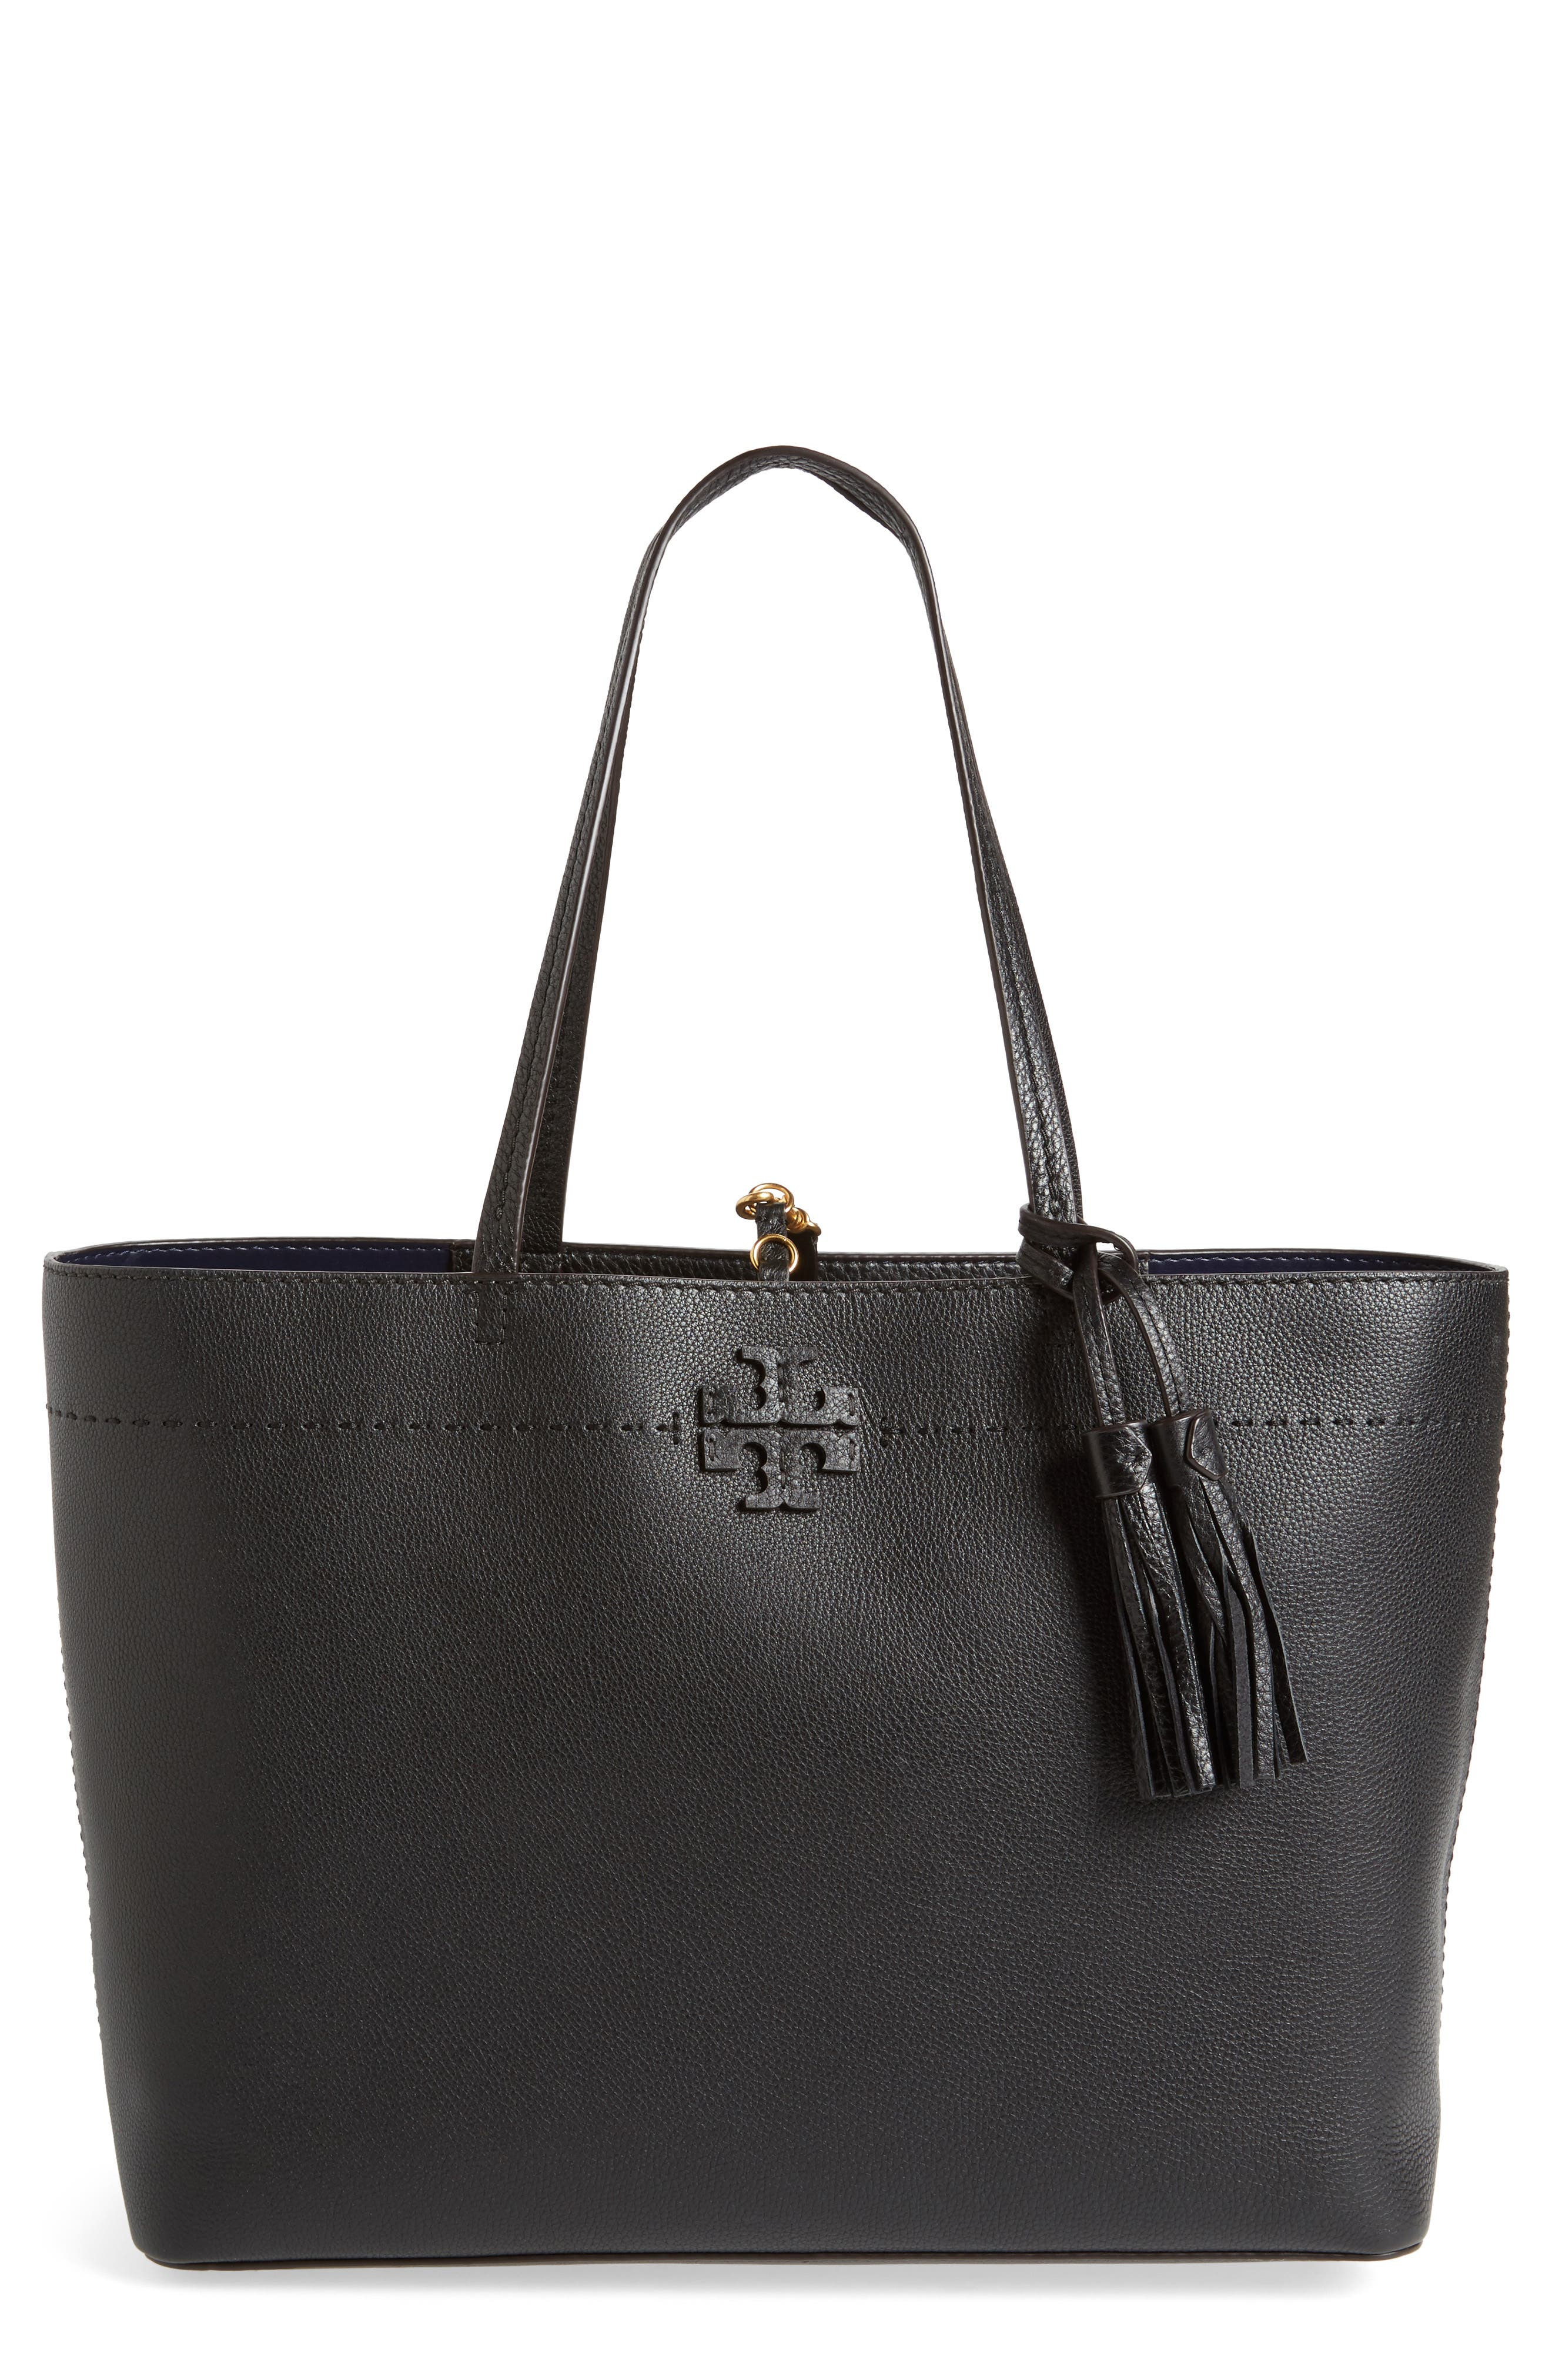 McGraw Leather Laptop Tote,                             Main thumbnail 1, color,                             BLACK/ ROYAL NAVY